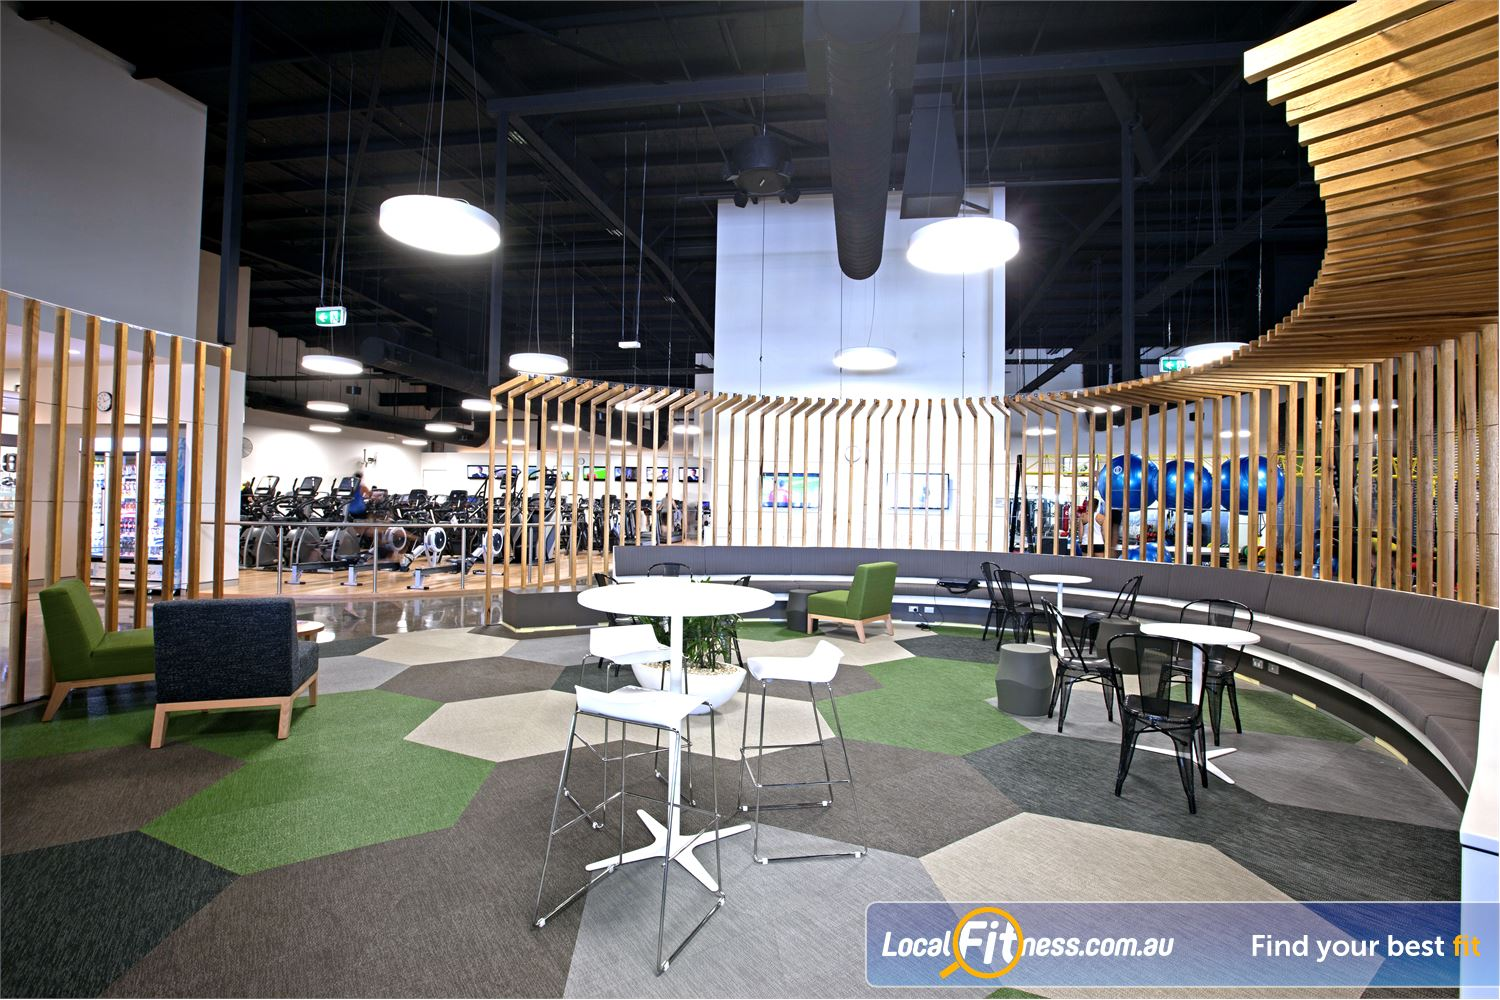 Goodlife Health Clubs Maroochydore Our Maroochydore gym is spread across 2100m2 of floorspace.